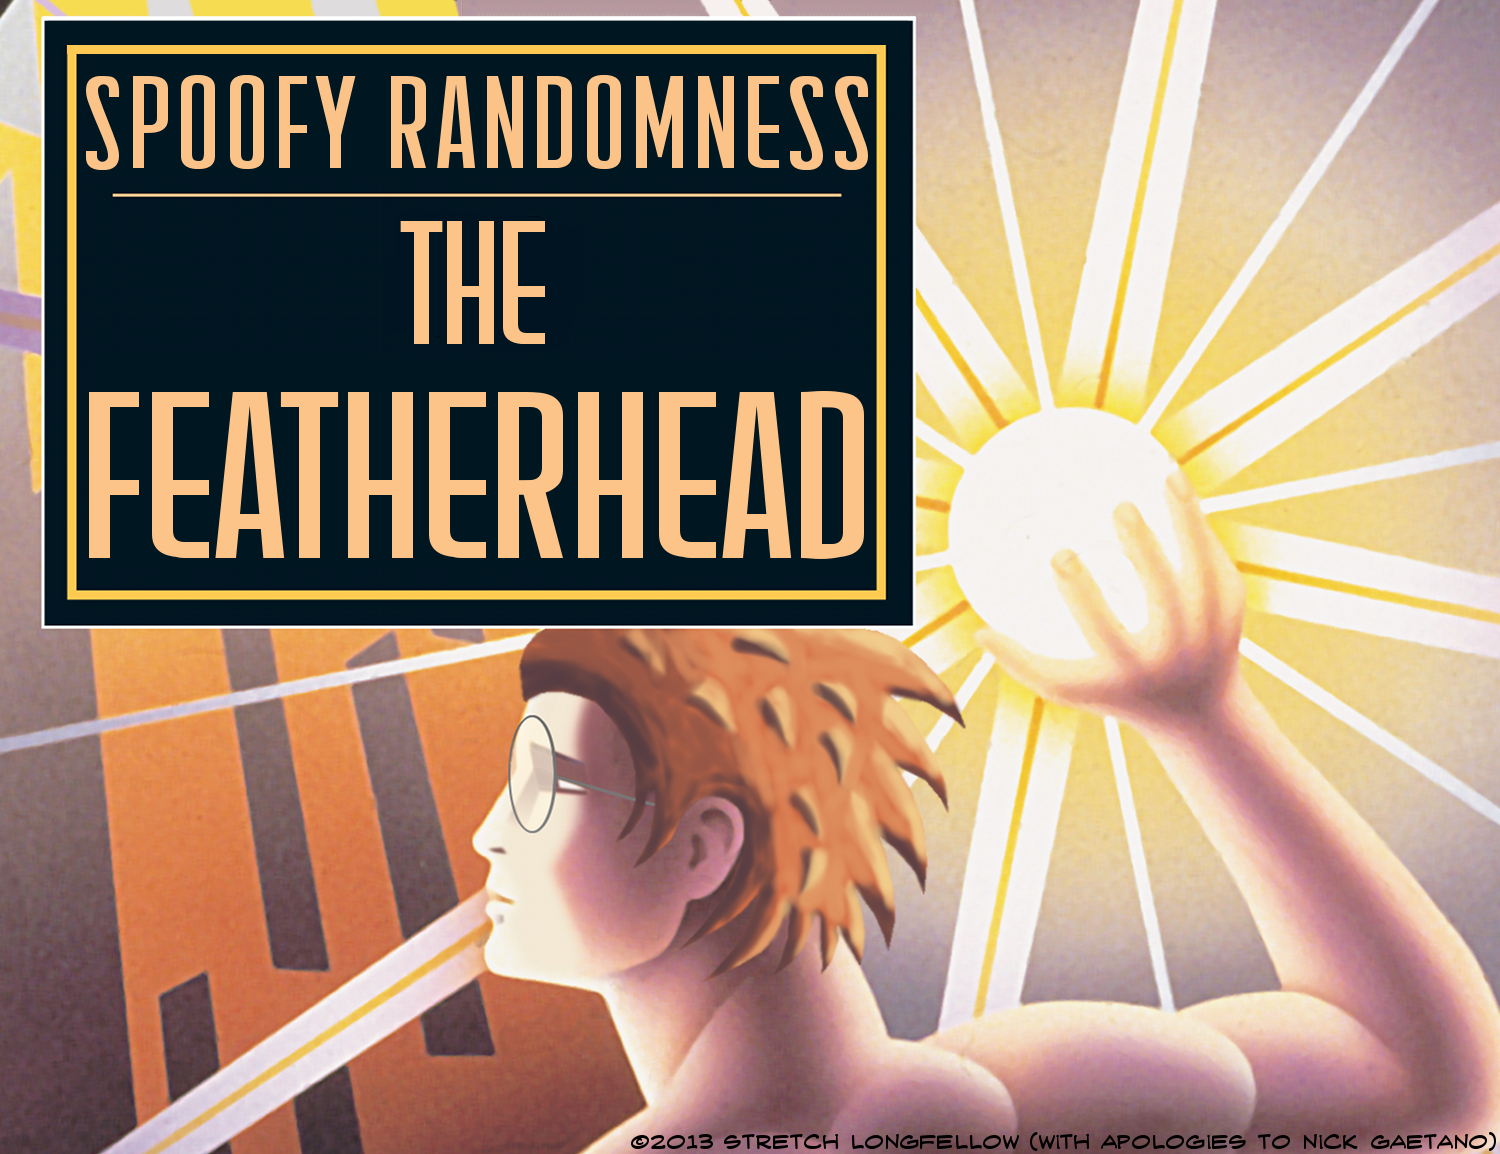 The Featherhead